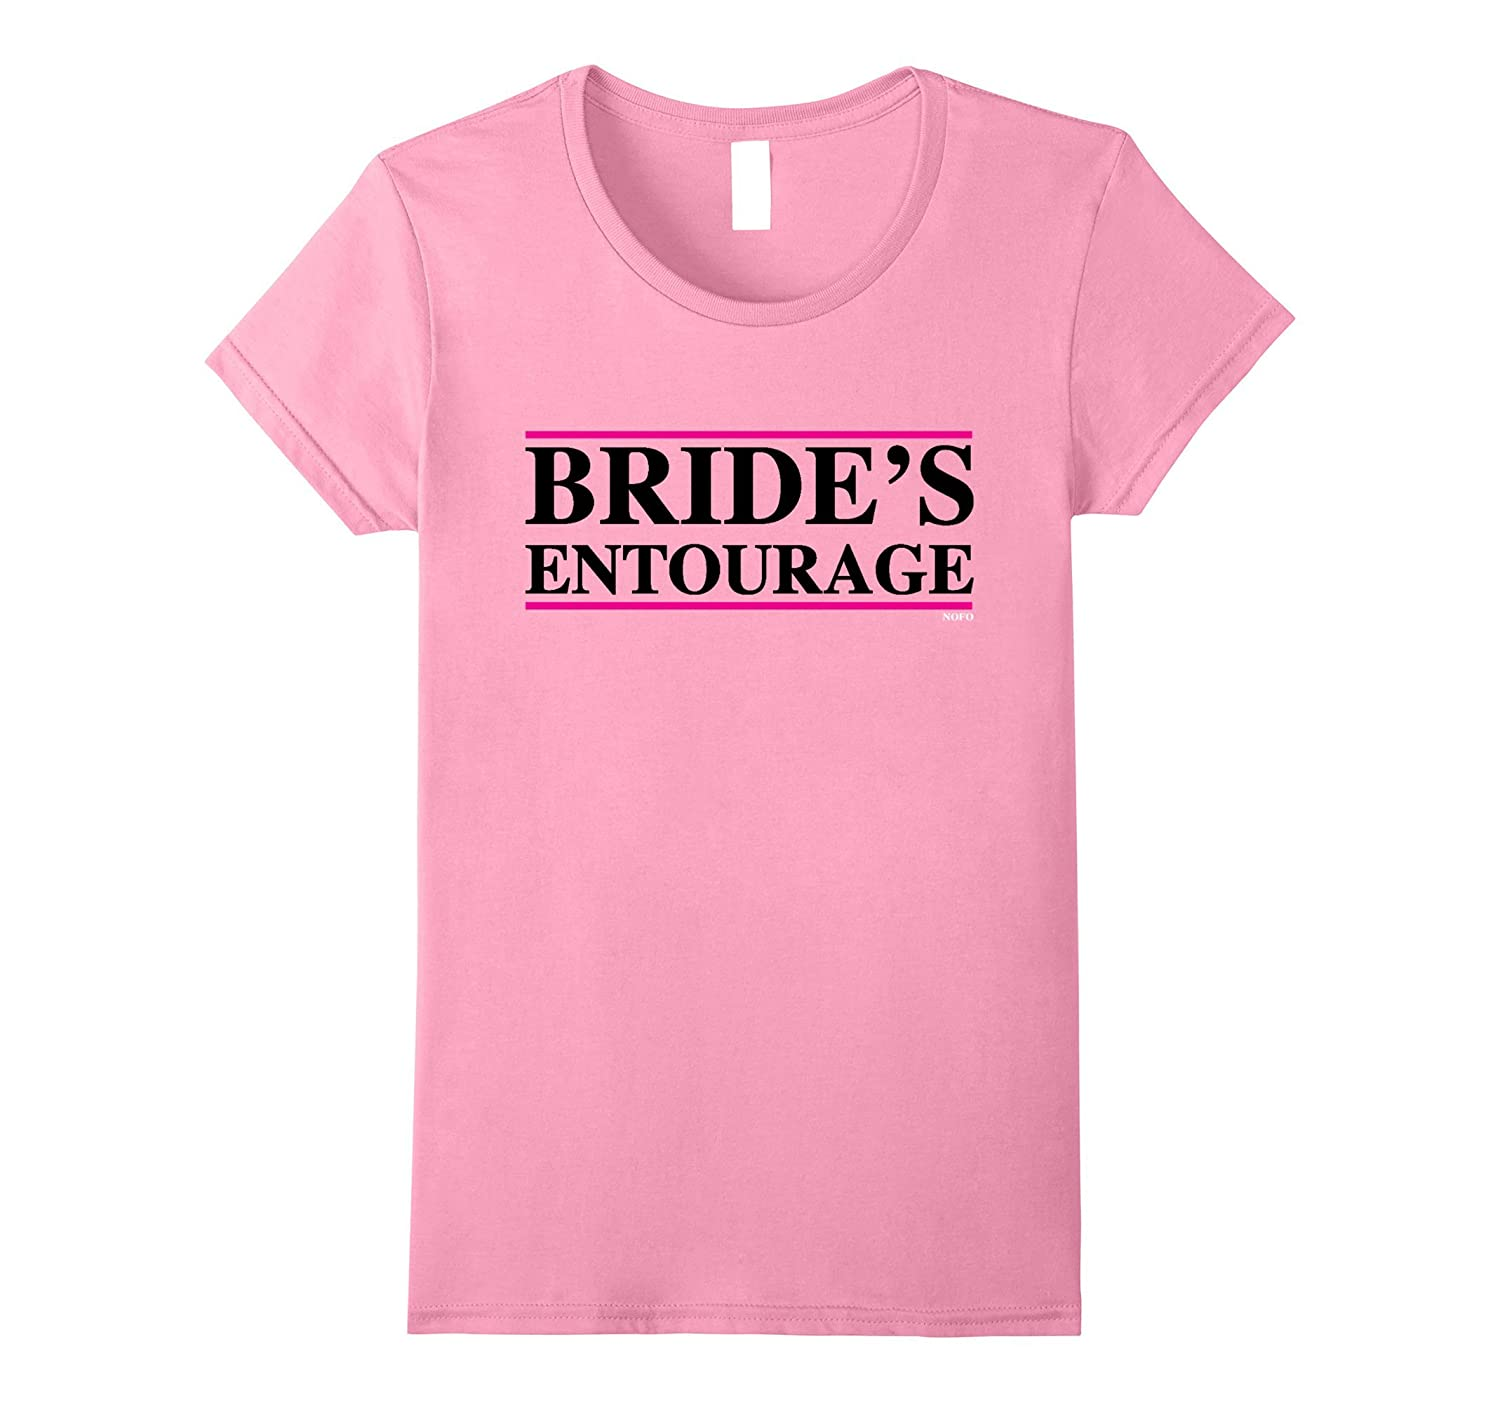 Bride's Entourage T-Shirt